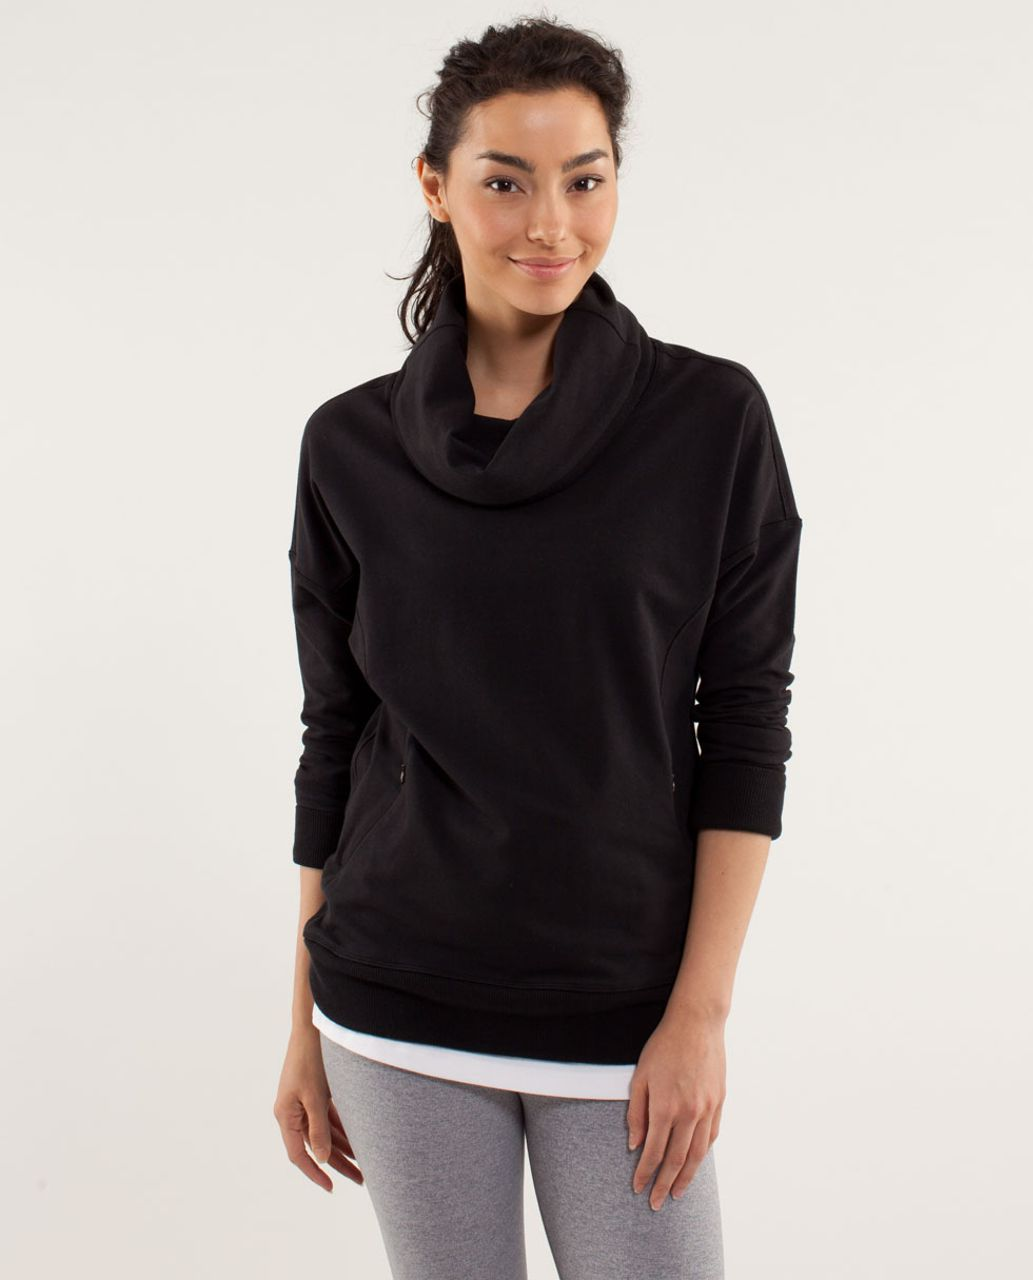 Lululemon Rest Day Pullover - Black